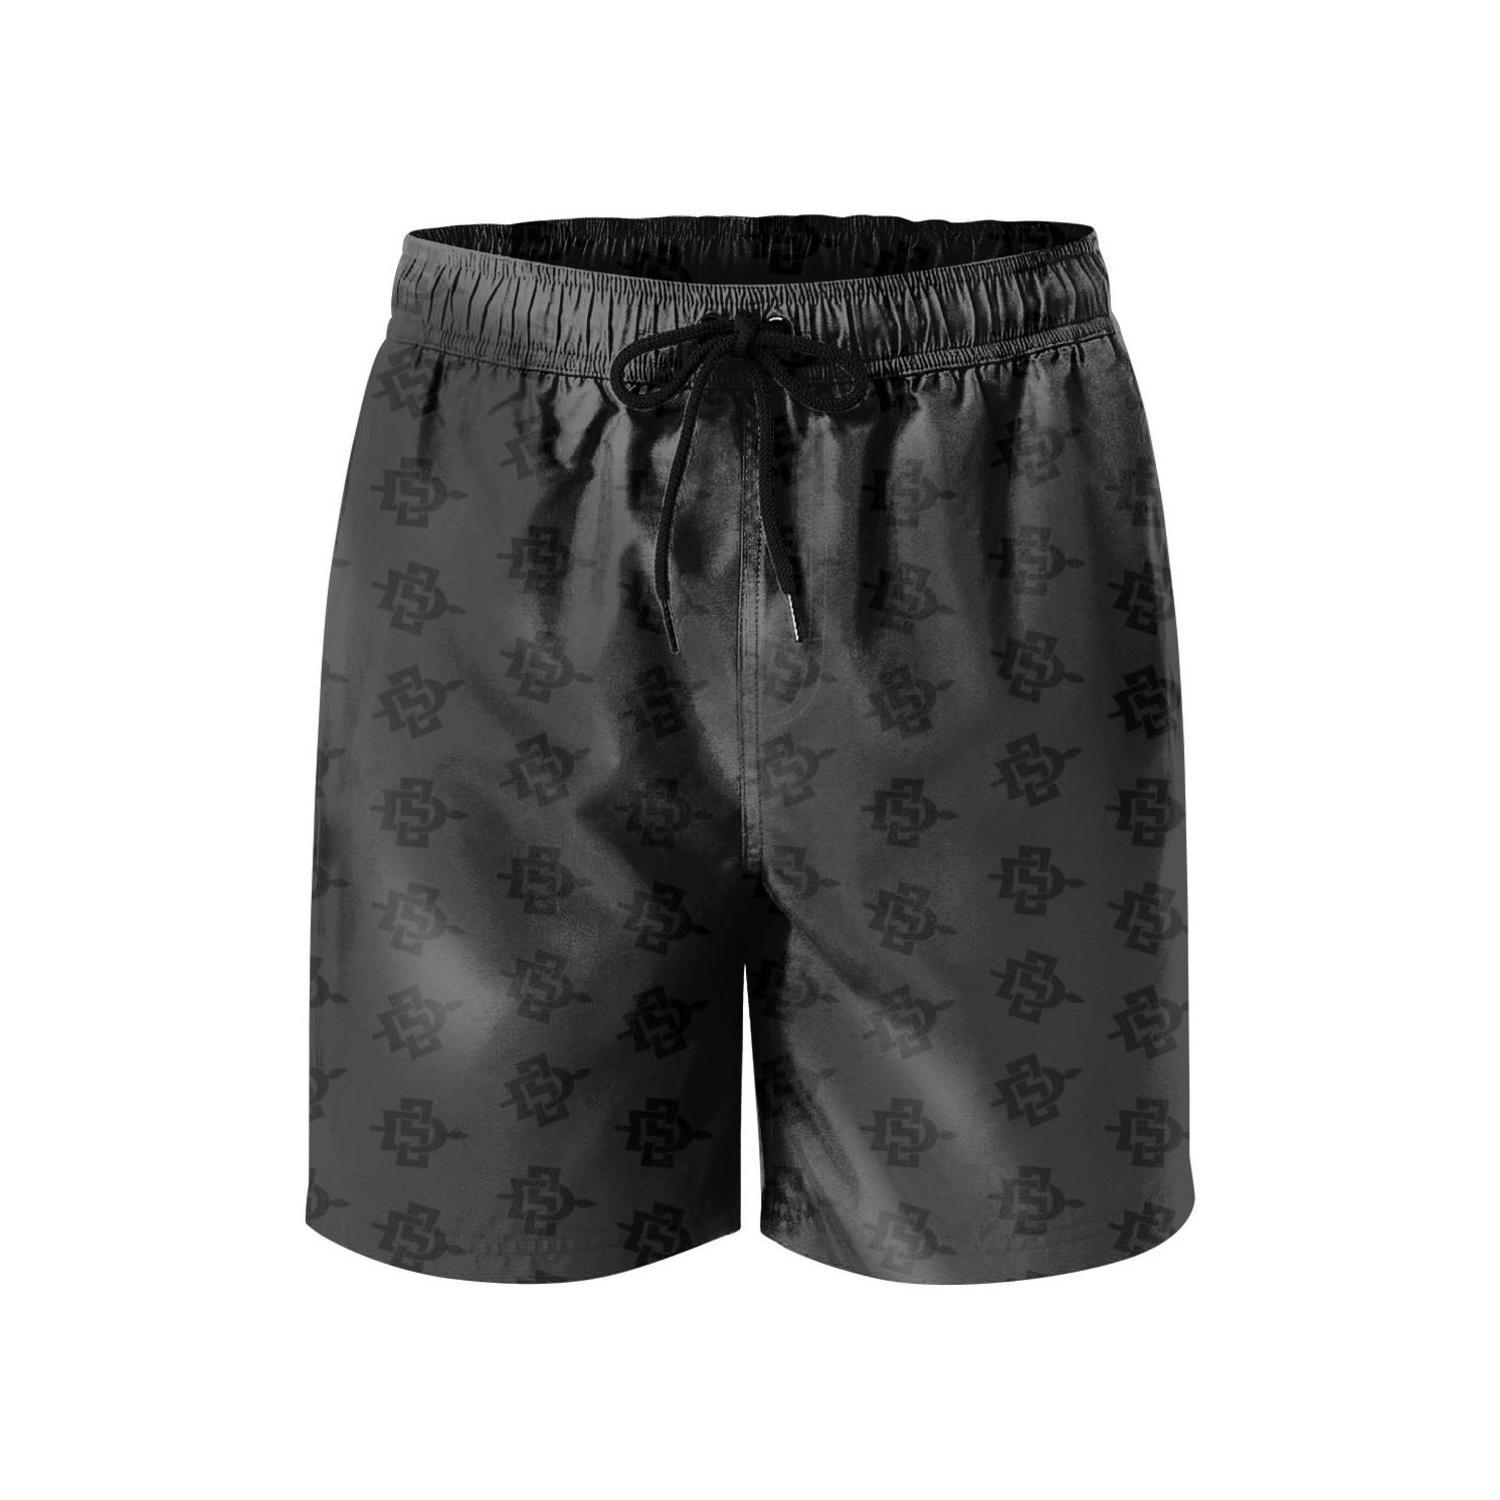 Vintage Flowers and Skull Board Short Quick Dry Swim Trunks 3D Printed Non-Fading Tropical Short